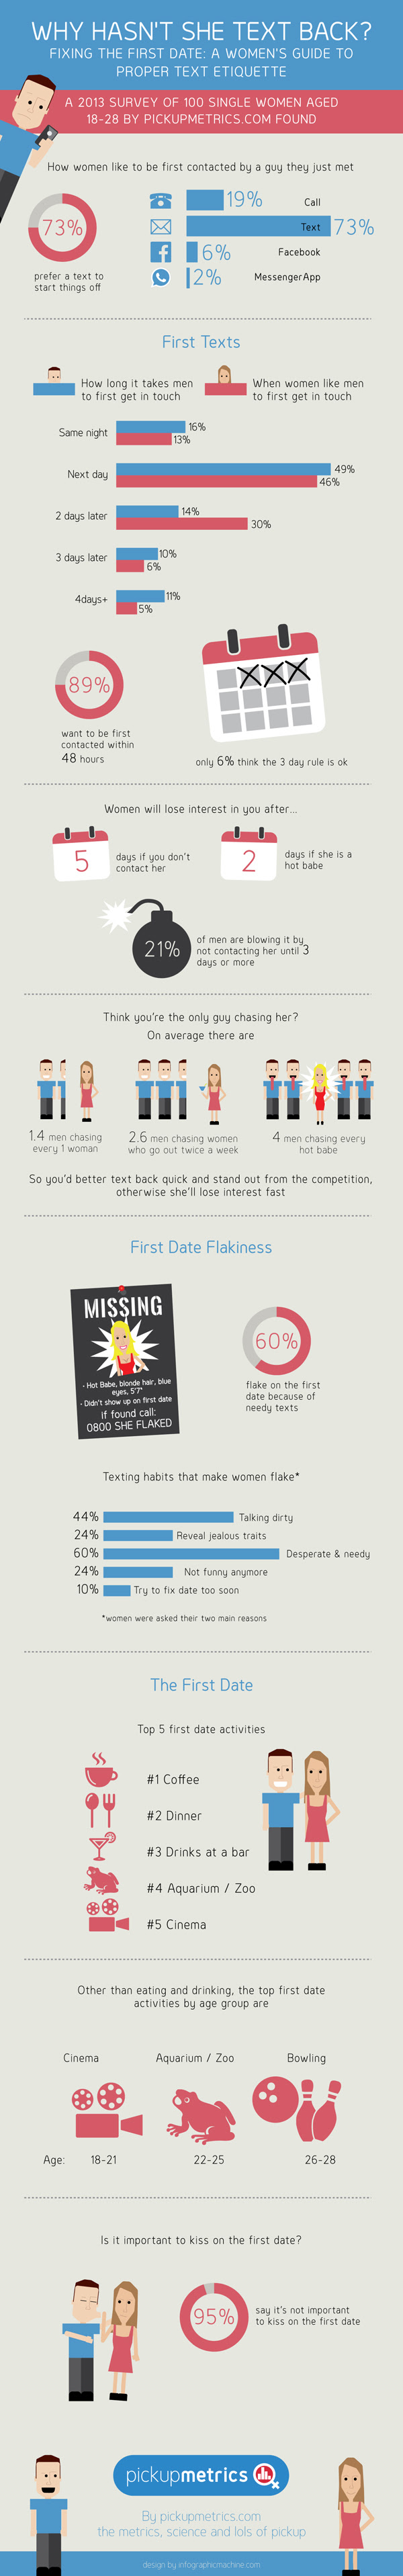 Infographic: Why Hasn't She Text Back?